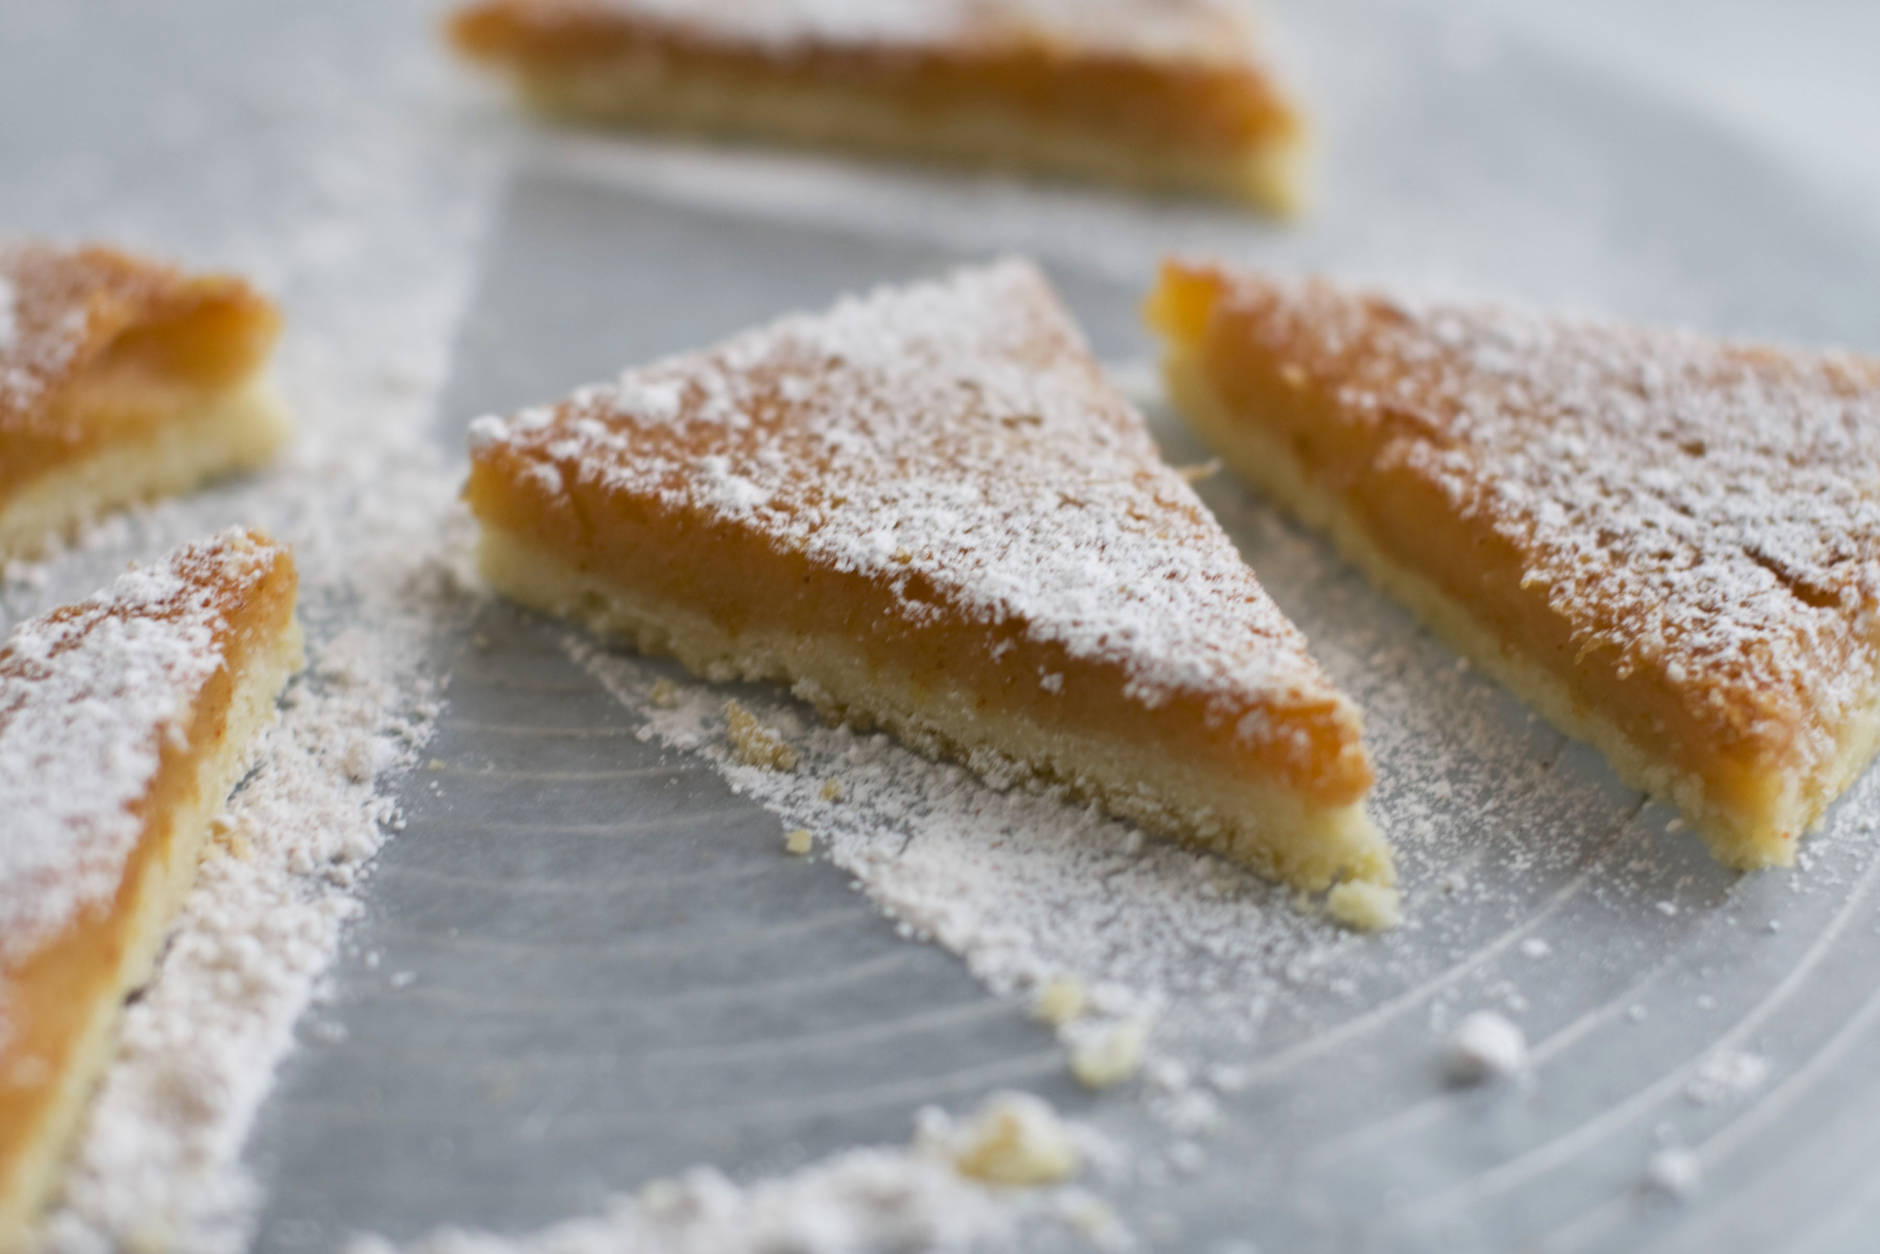 In this image taken on Monday, Nov. 5, 2012, paprika lemon bars are shown in Concord, N.H. (AP Photo/Matthew Mead)